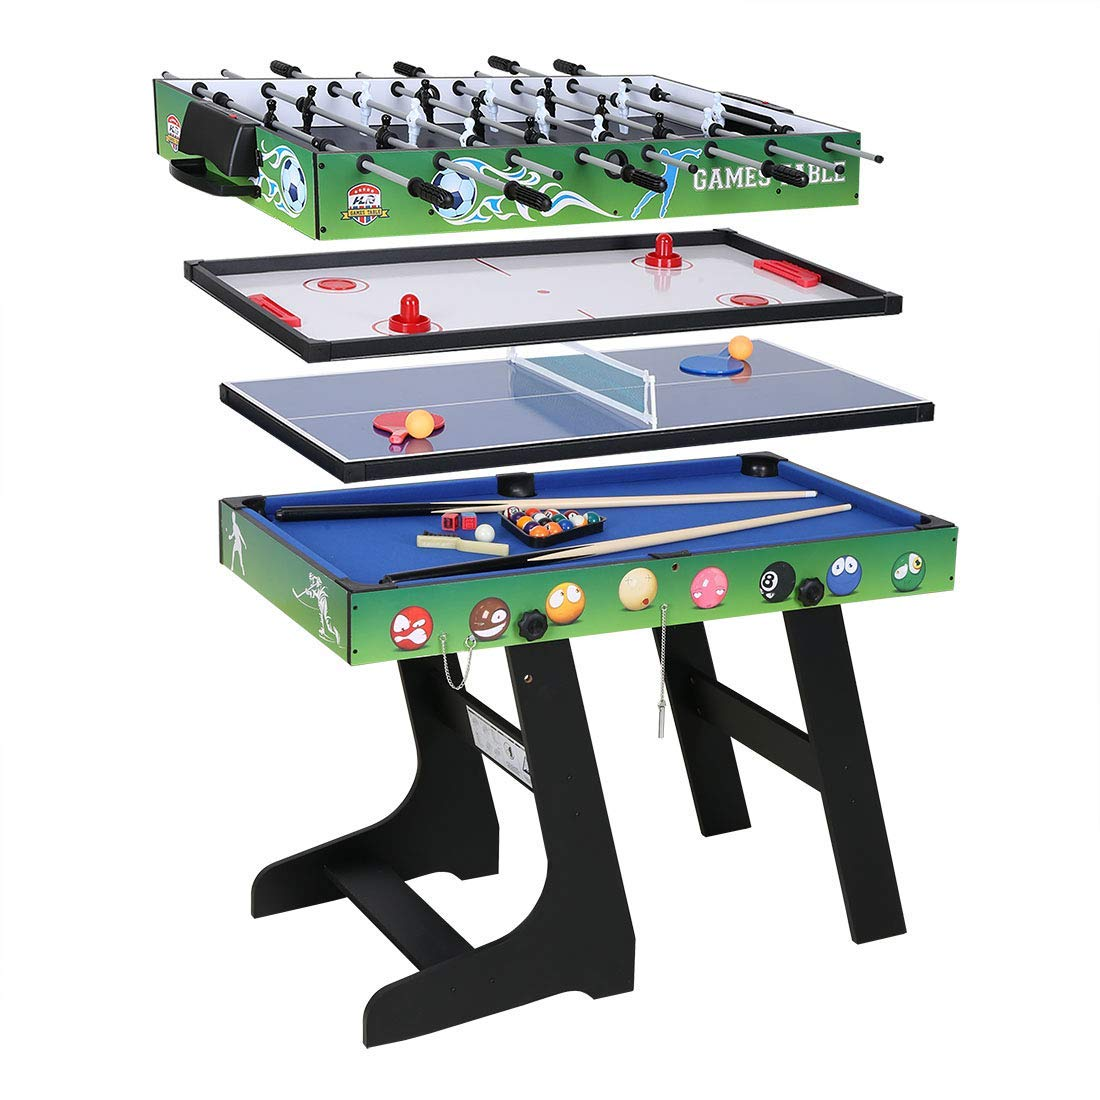 4FT 4-in-1 Multi Combo Game Table- Hockey Table, Foosball Table, Pool Table, Table Tennis Table